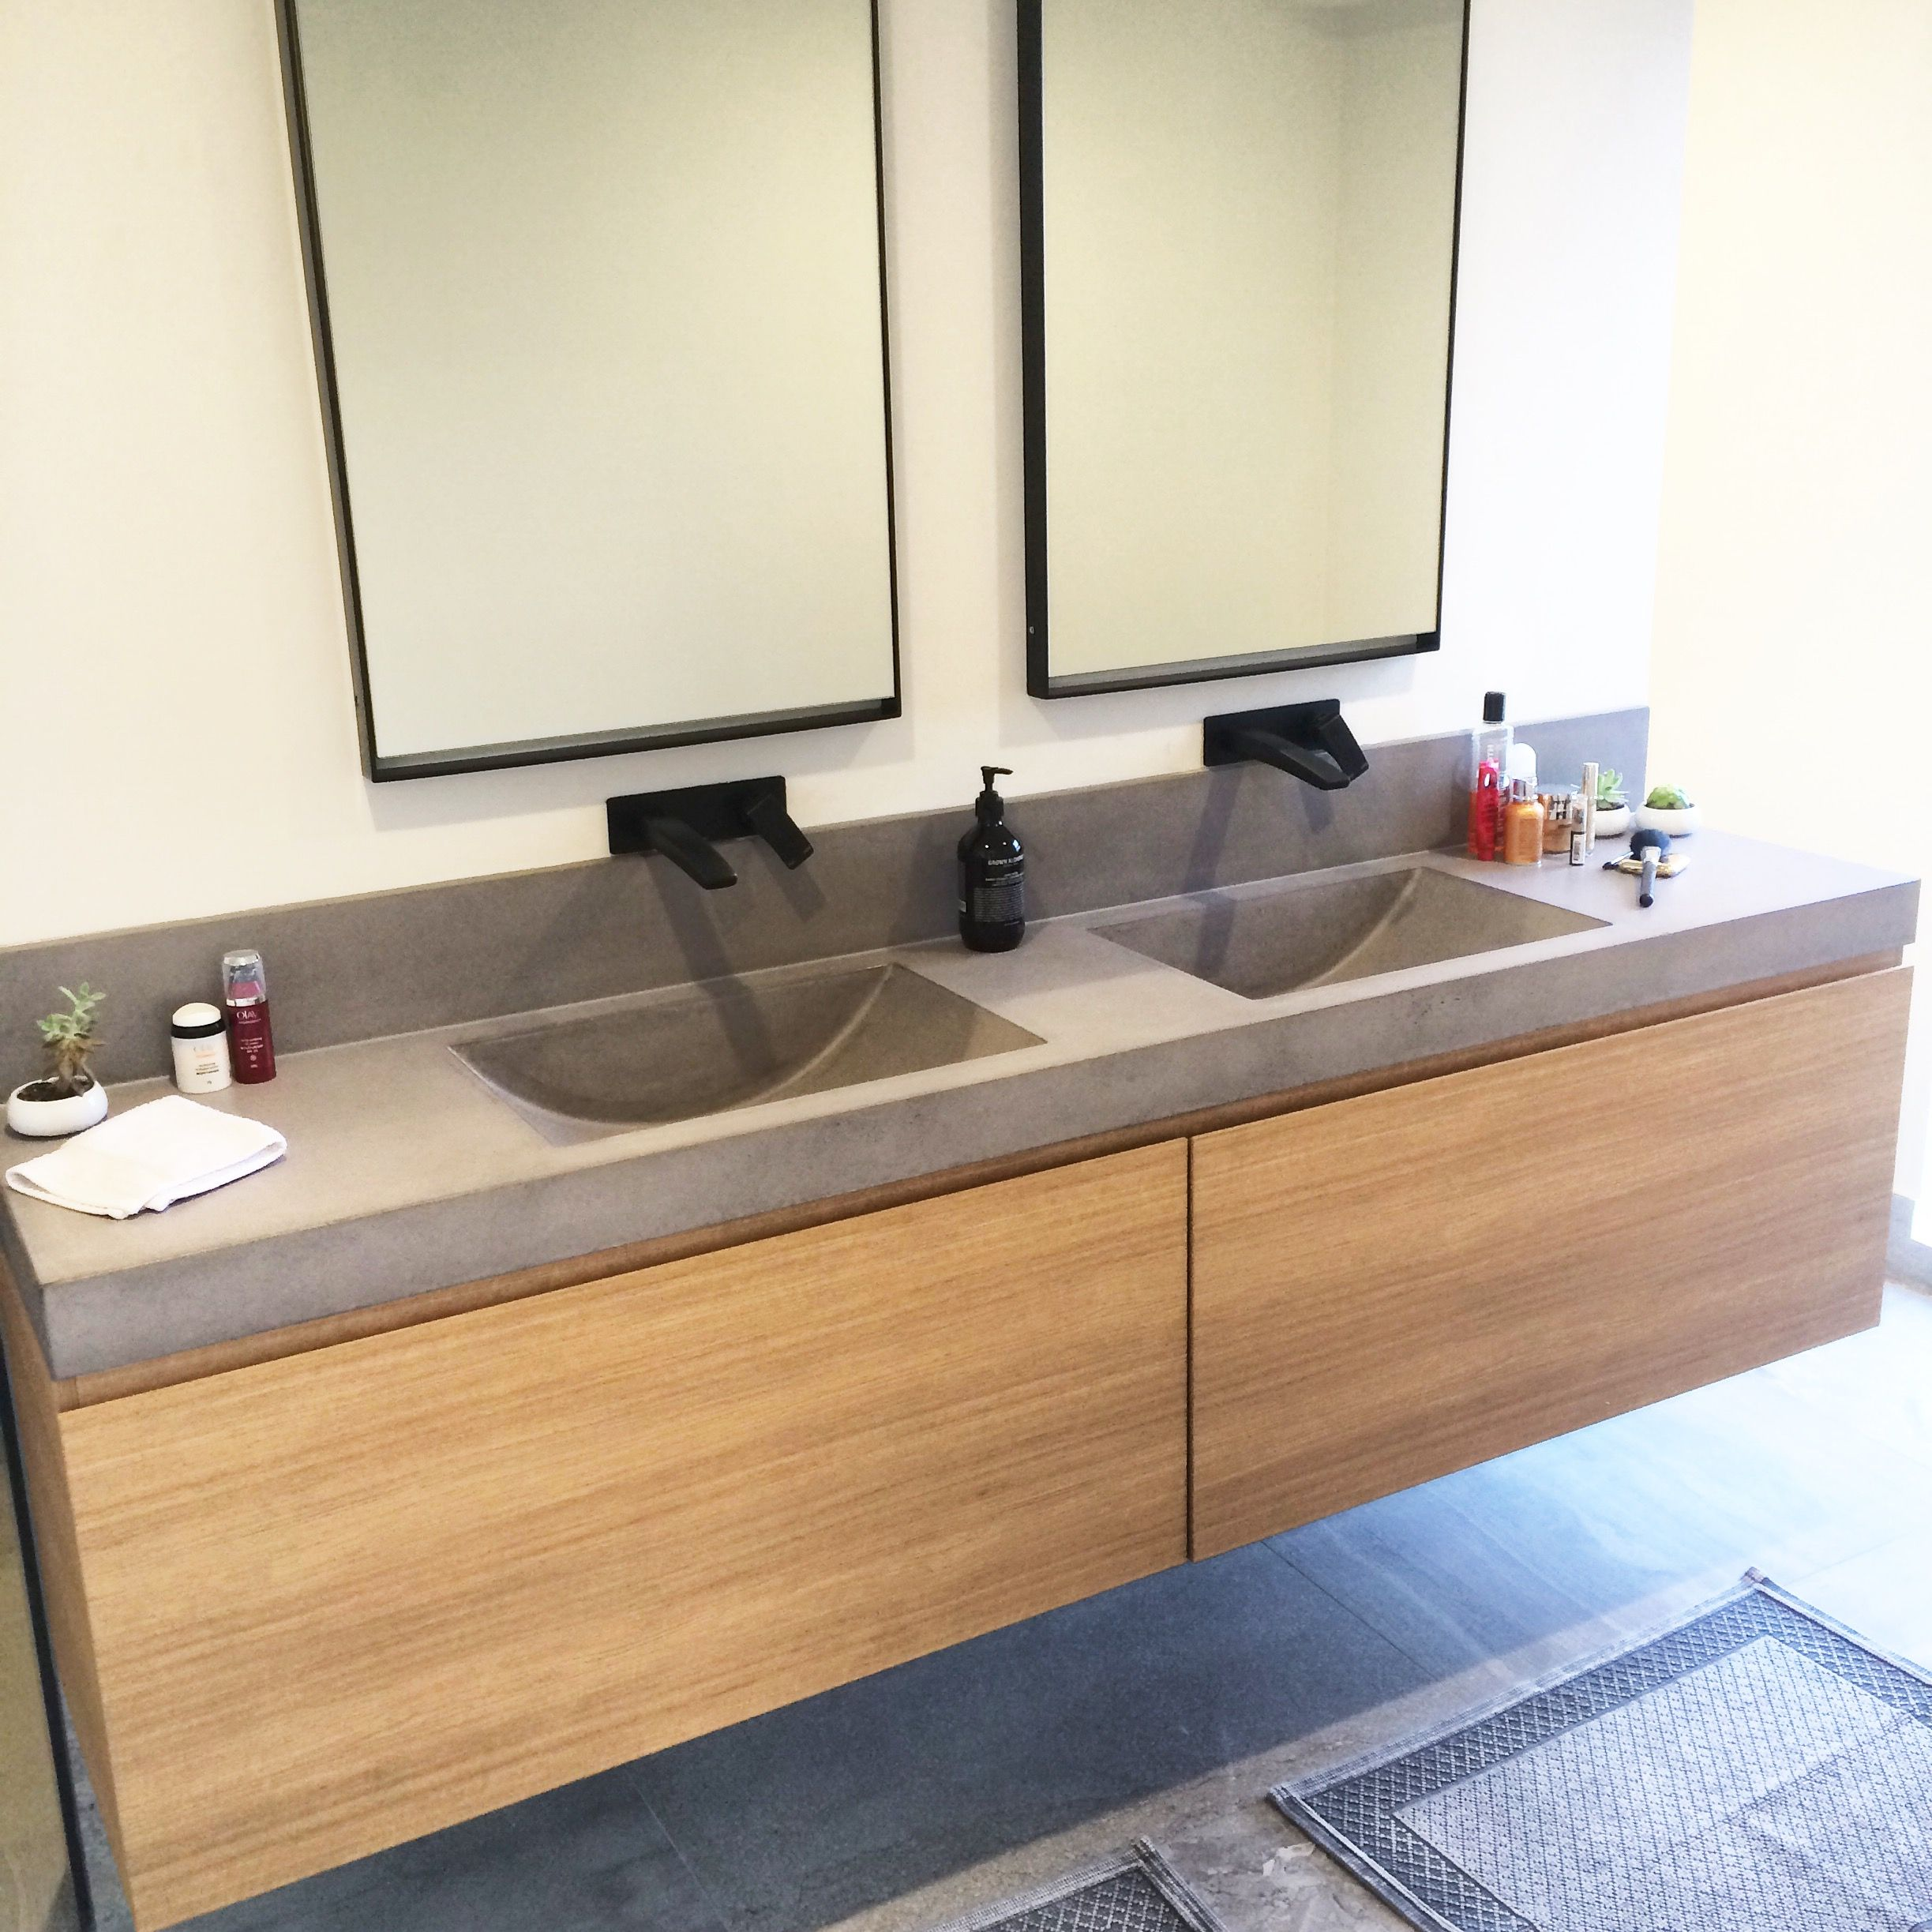 Polished Concrete Vanity Top with integrated sink by Mitchell Bink Concrete  Design  www mbconcretedesign. Polished Concrete Vanity Top with integrated sink by Mitchell Bink